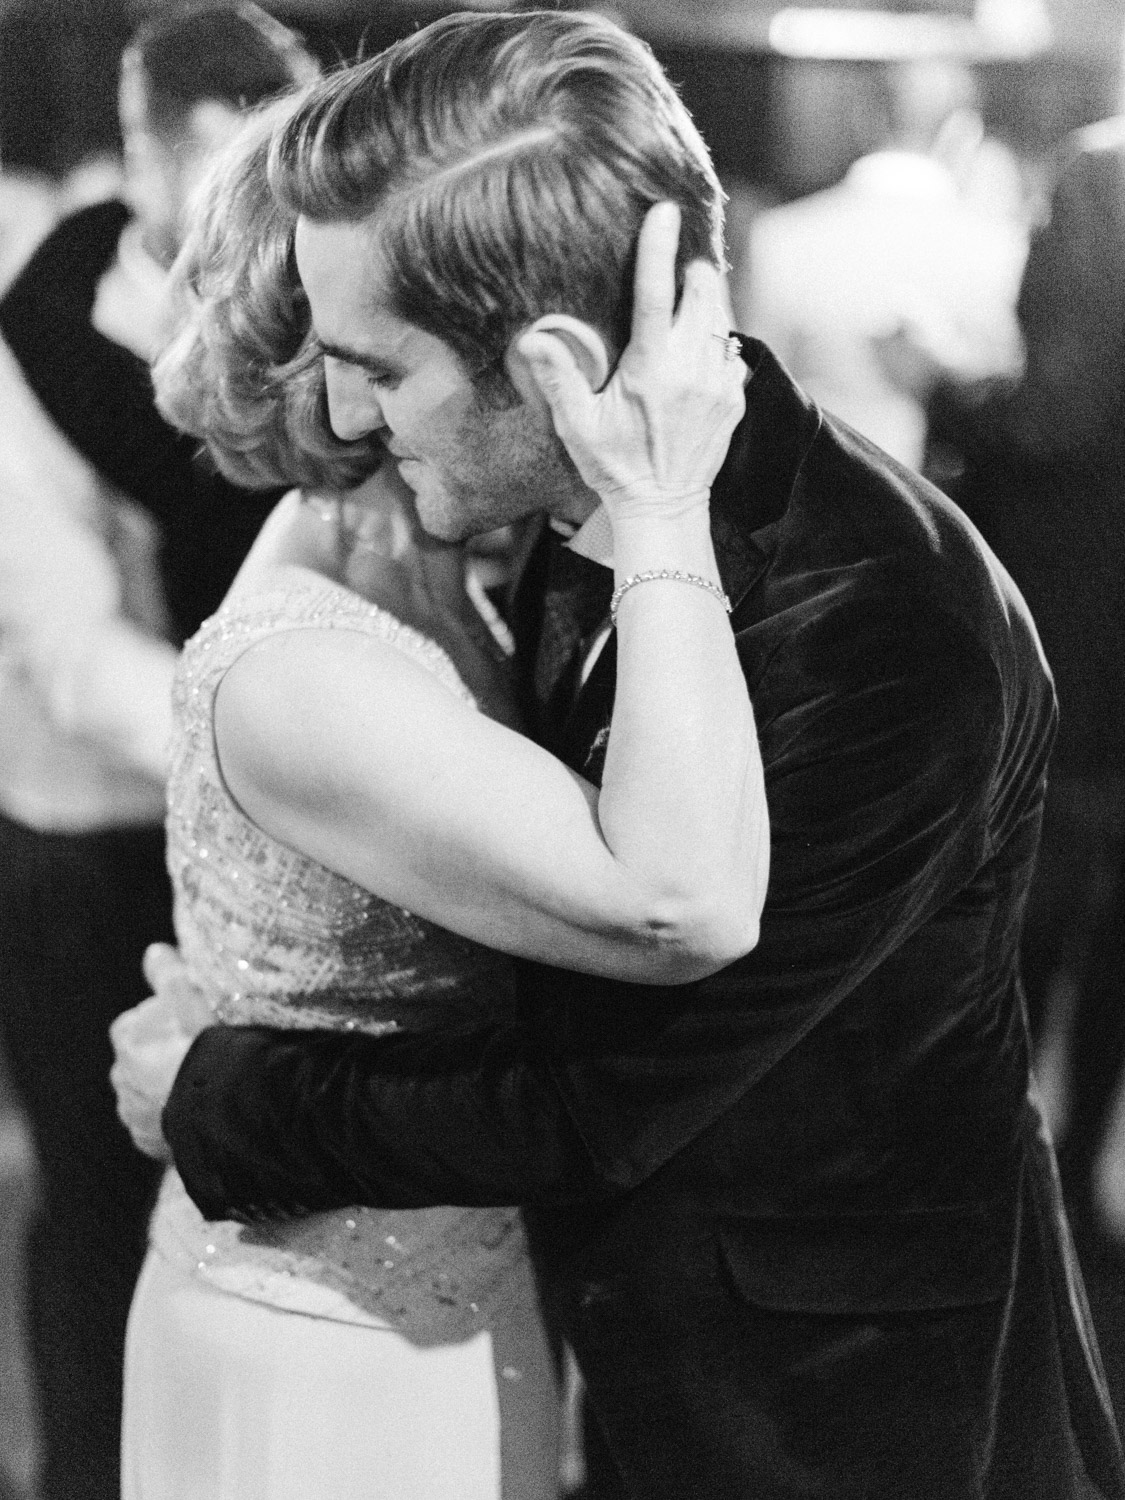 Emotional natural mother son dance photograph from intimate Italian wedding  at The Burroughes.  Captured by Toronto wedding photographer Corynn Fowler Photography.